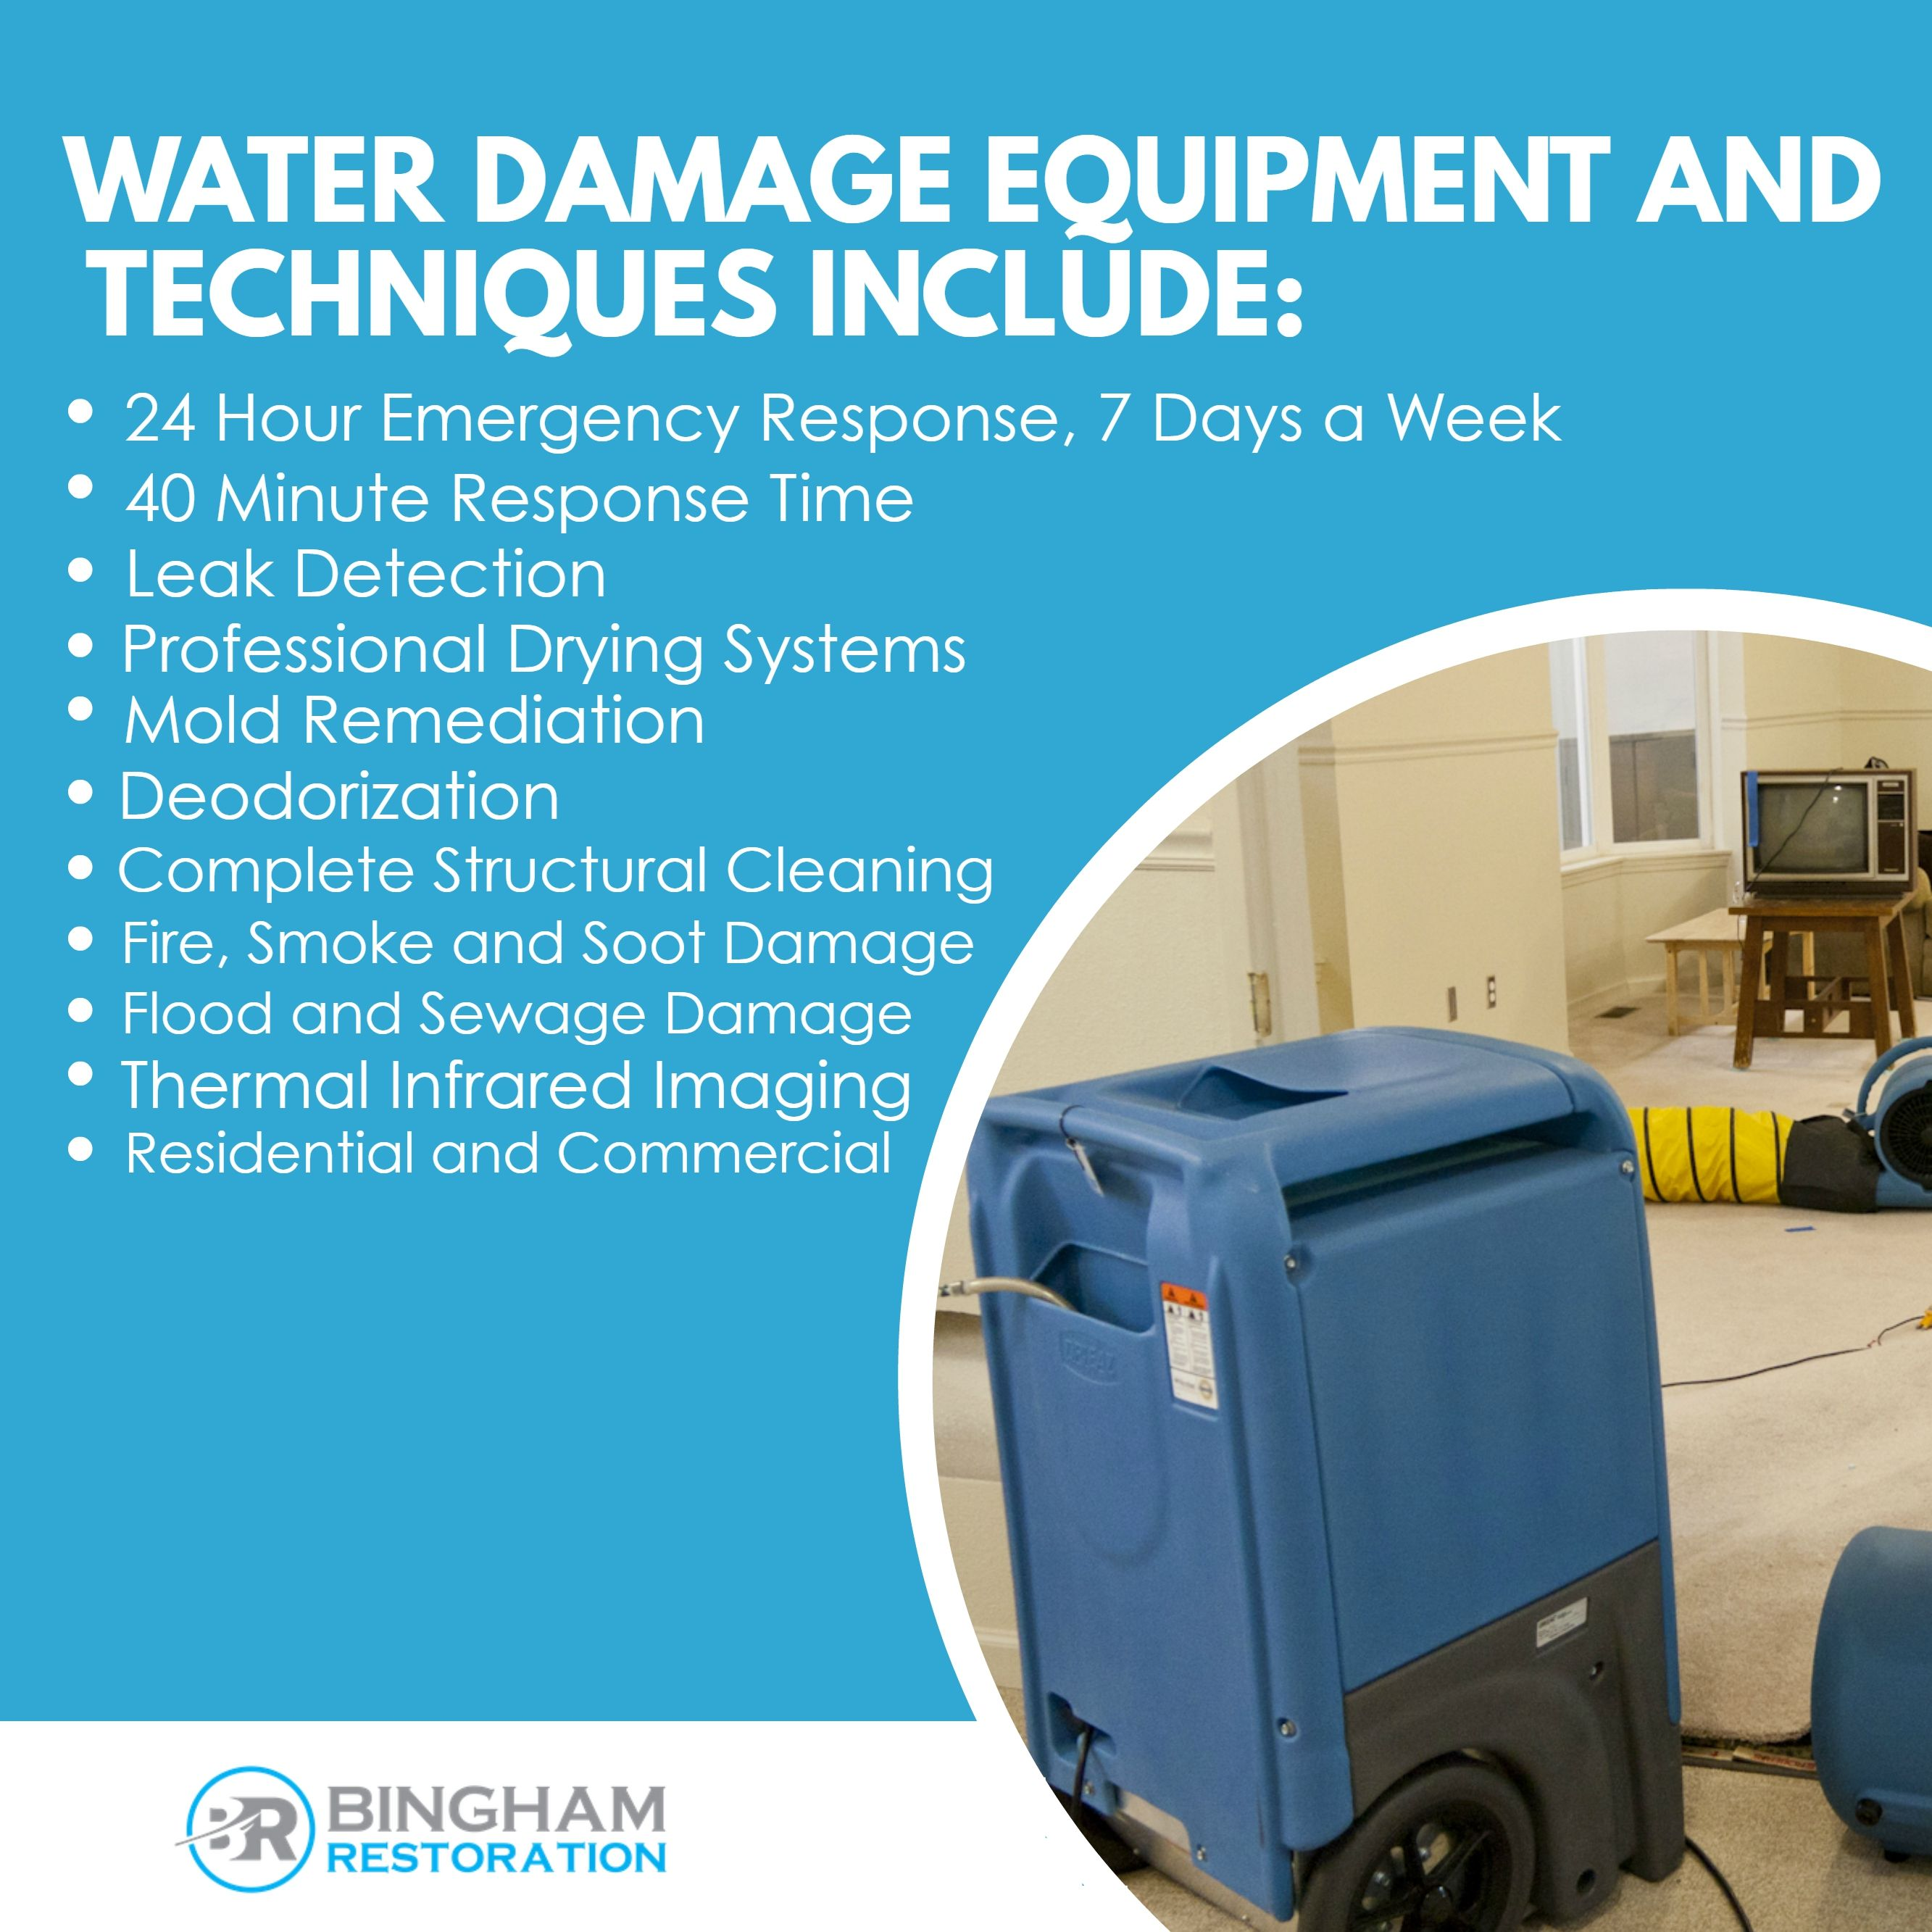 Water Damage Equipment And Techniques Include 24 Hour Emergency Response 7 Days A Week 40 Minute Respons With Images Mold Remediation Emergency Response Restoration